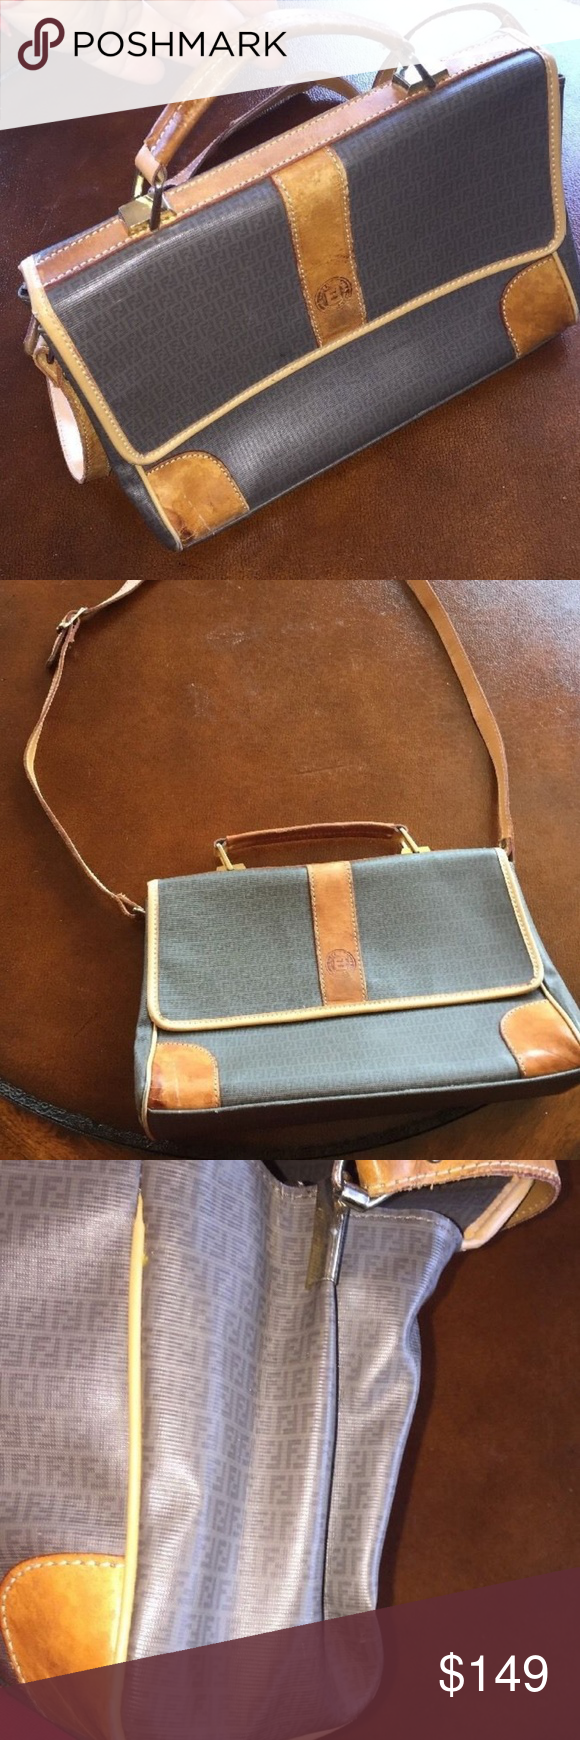 9514318c6be Fendi Zucca Brown Leather Vintage Bag -This is a Vintage Fendi Bag. Can be